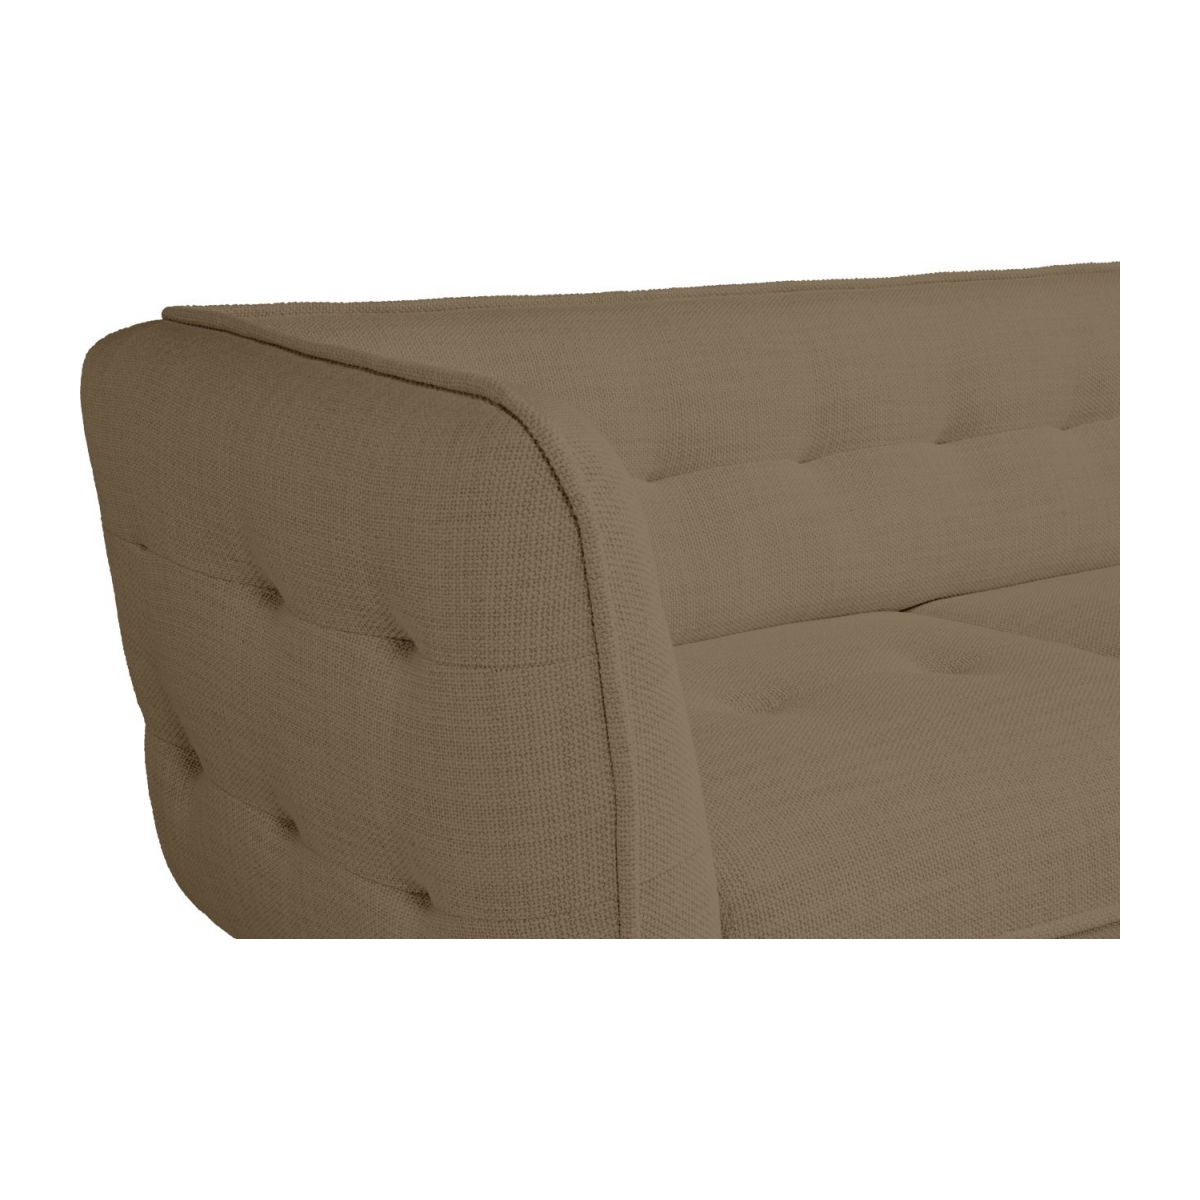 2 seater sofa in Fasoli fabric, jatoba brown and oak legs n°6